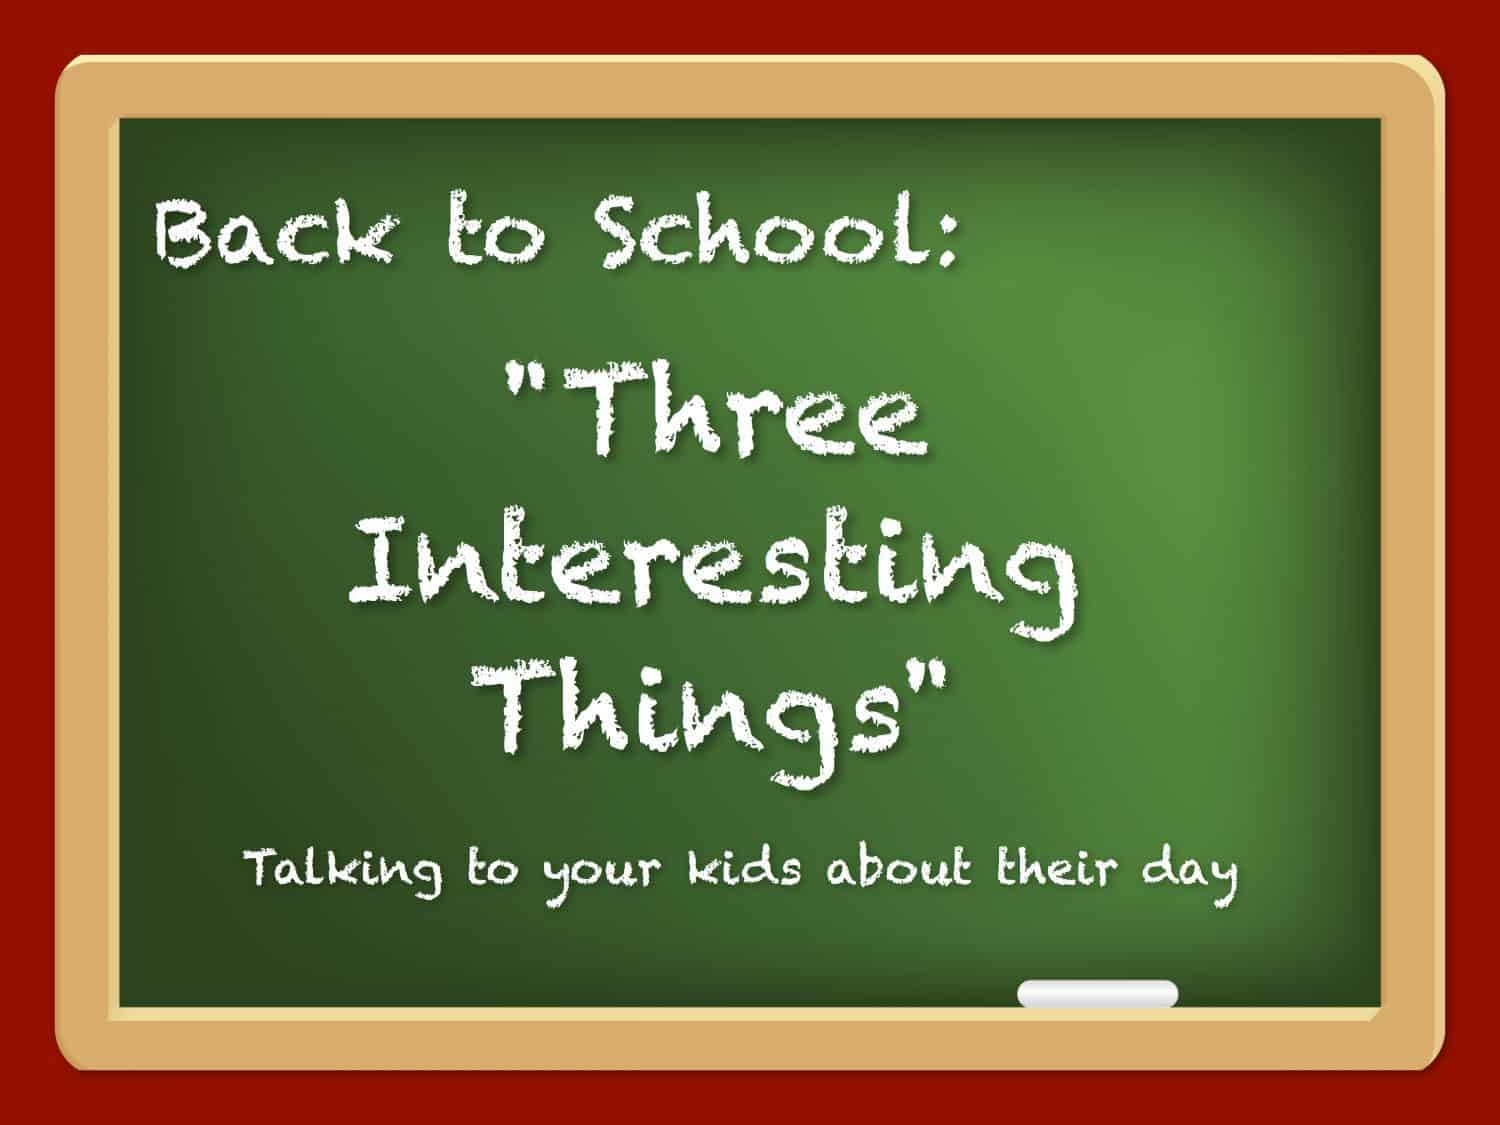 Back to School 3 Interesting Things - How to Talk to Your Kids About Their Day